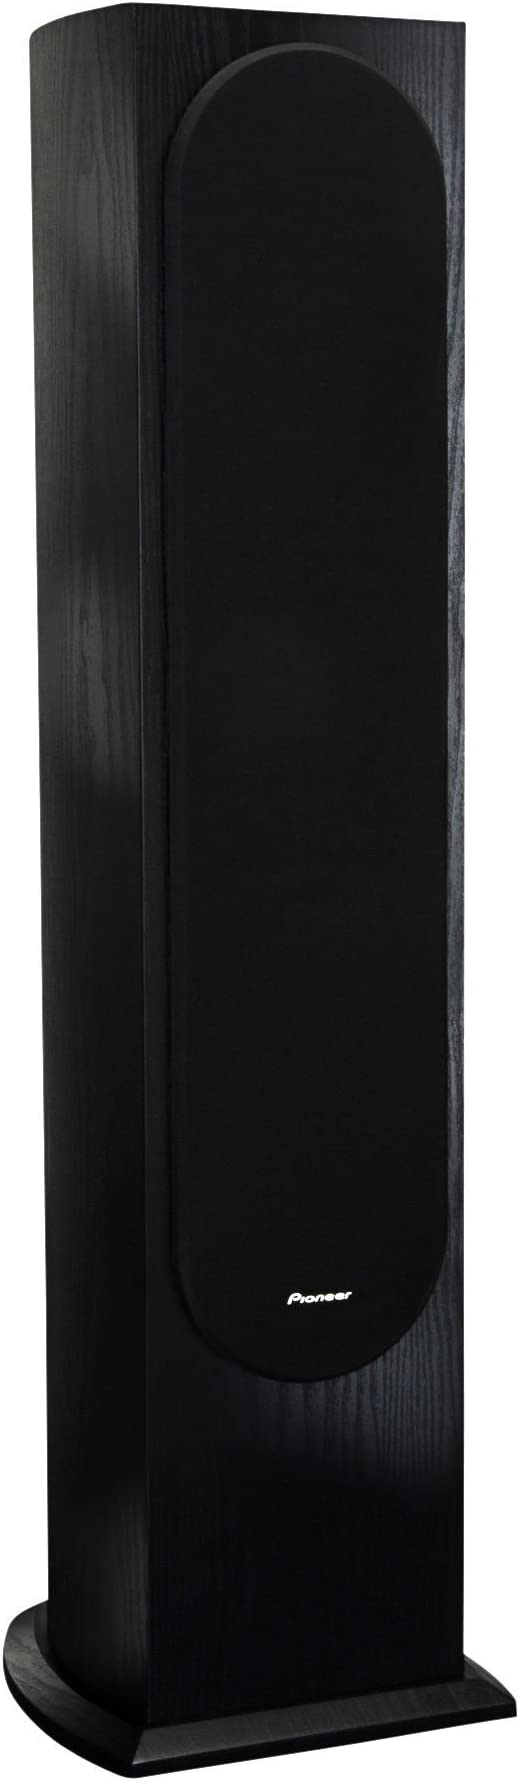 Pioneer SP-FS52 Home Audio Andrew Jones Designed Floor Standing Loudspeaker